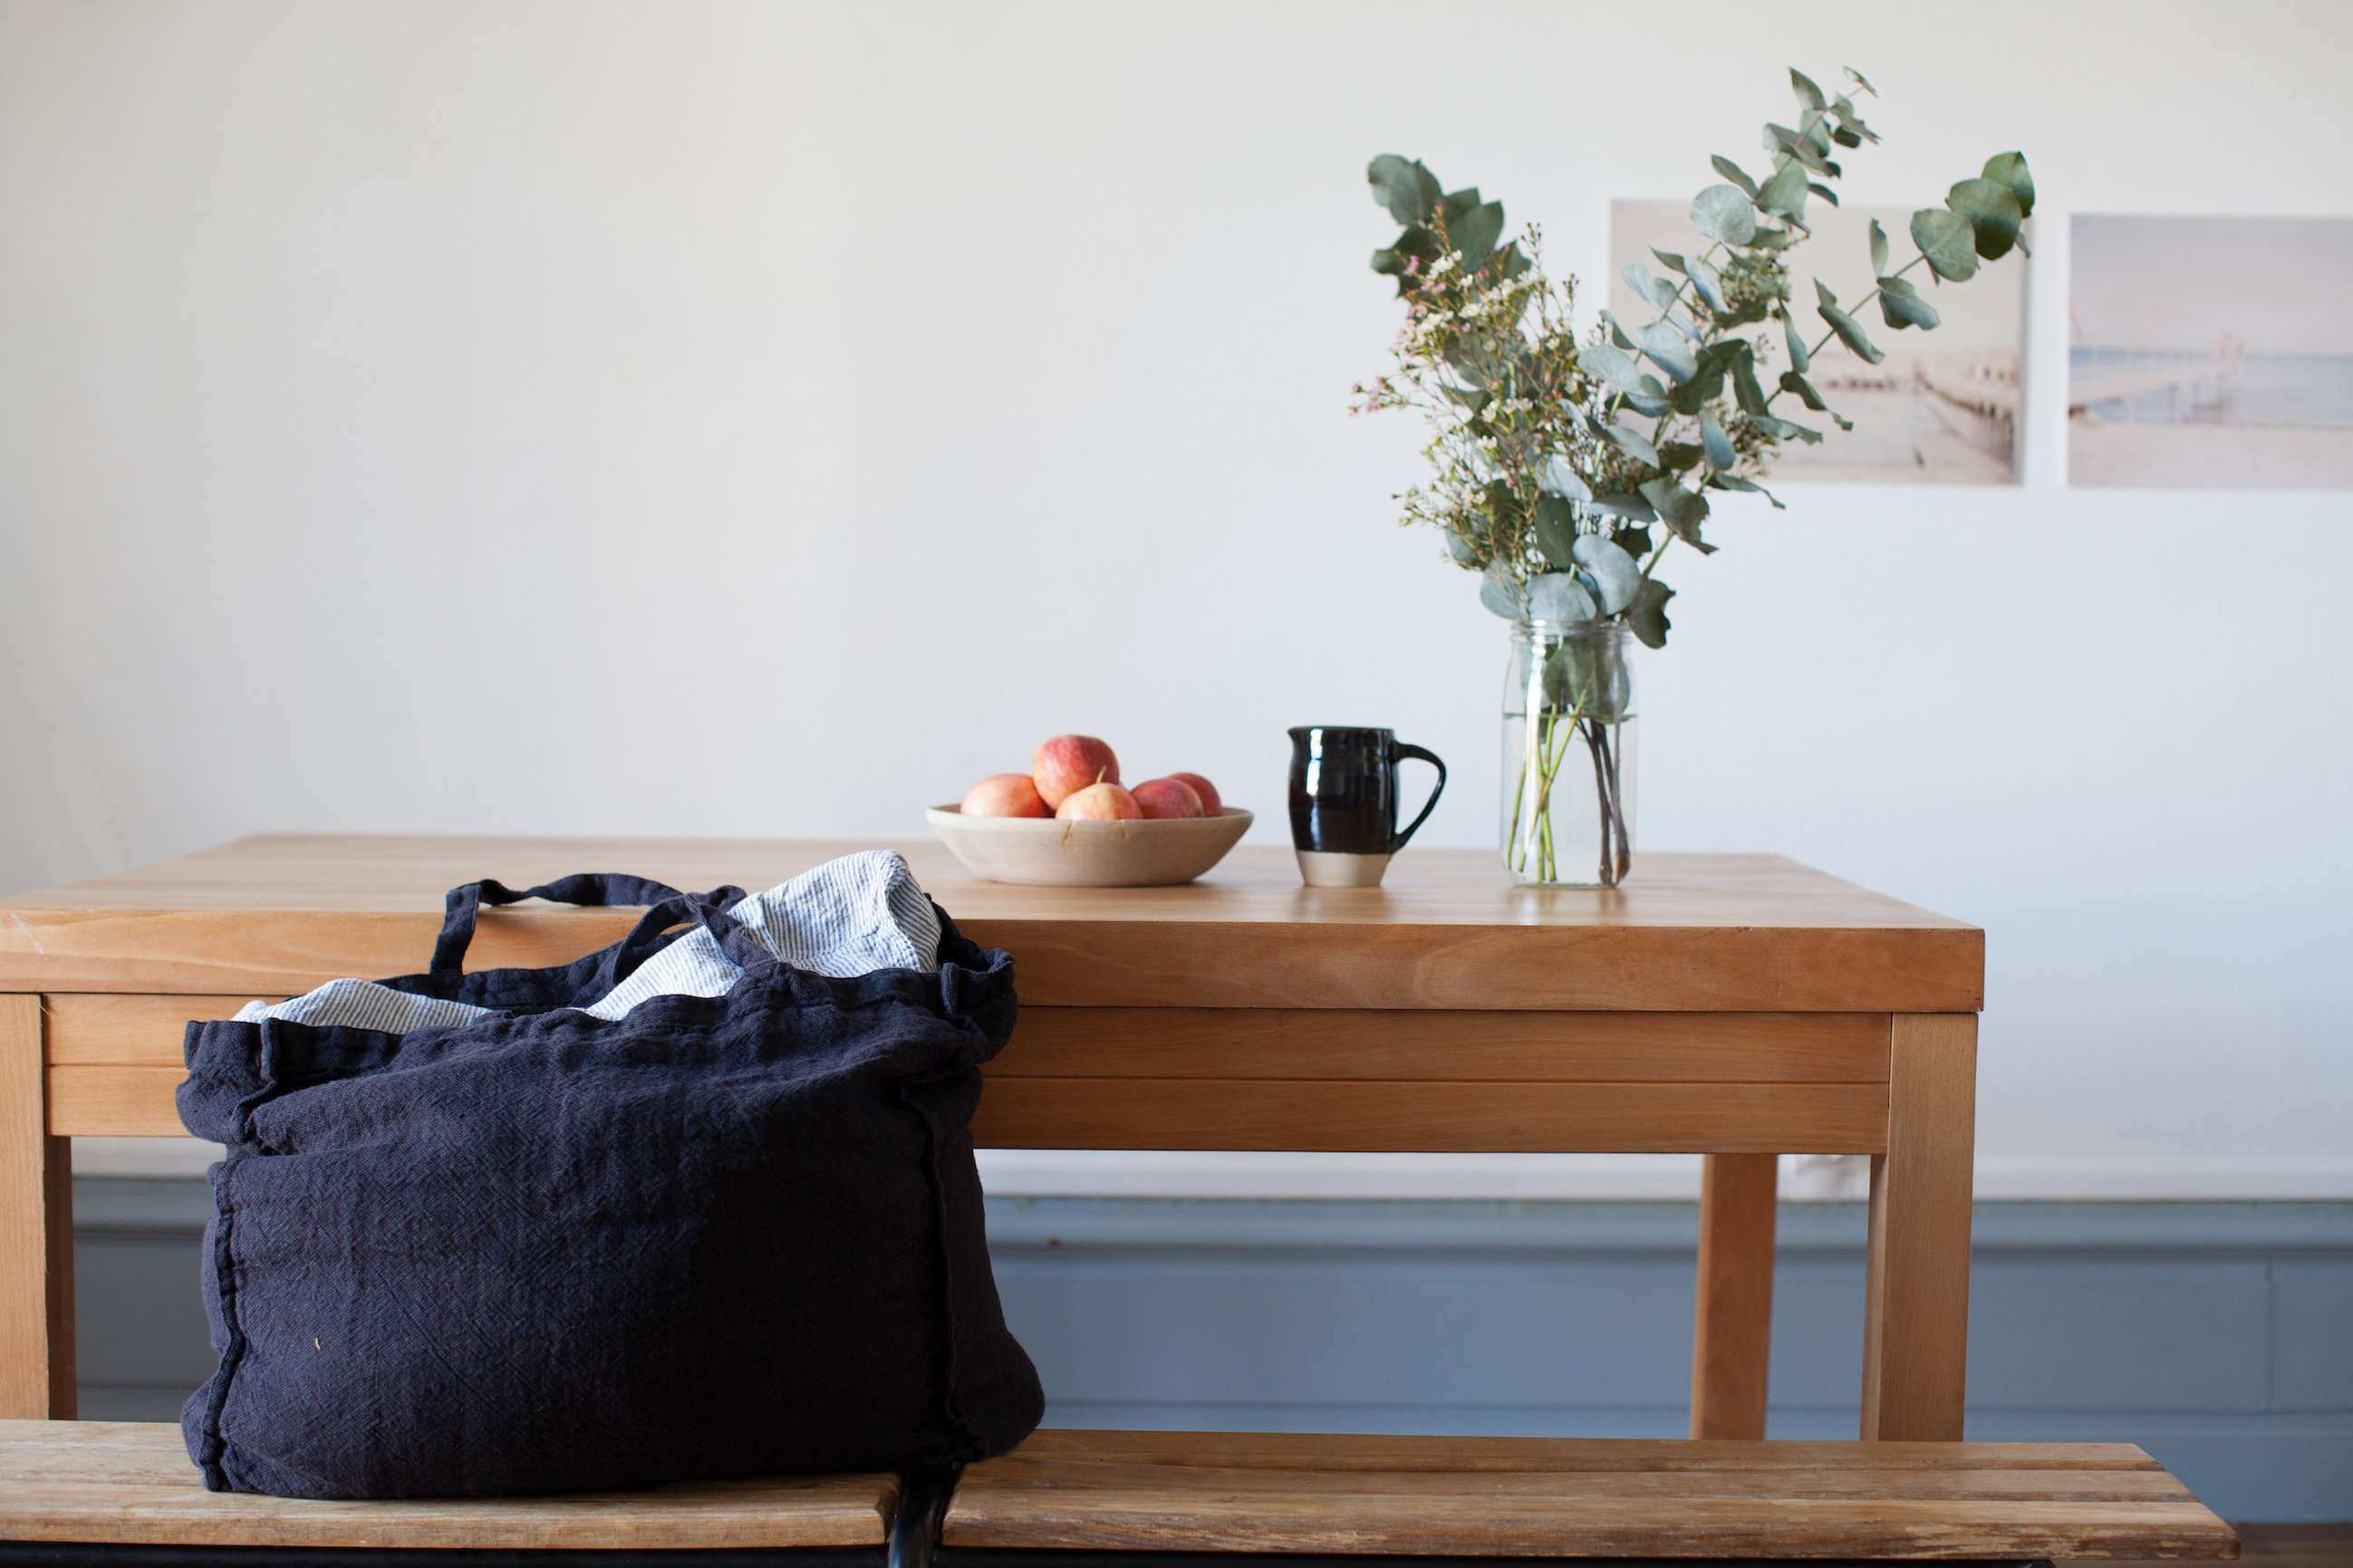 Washed linen tote bag from Le Reperes des Belettes | Remodelista